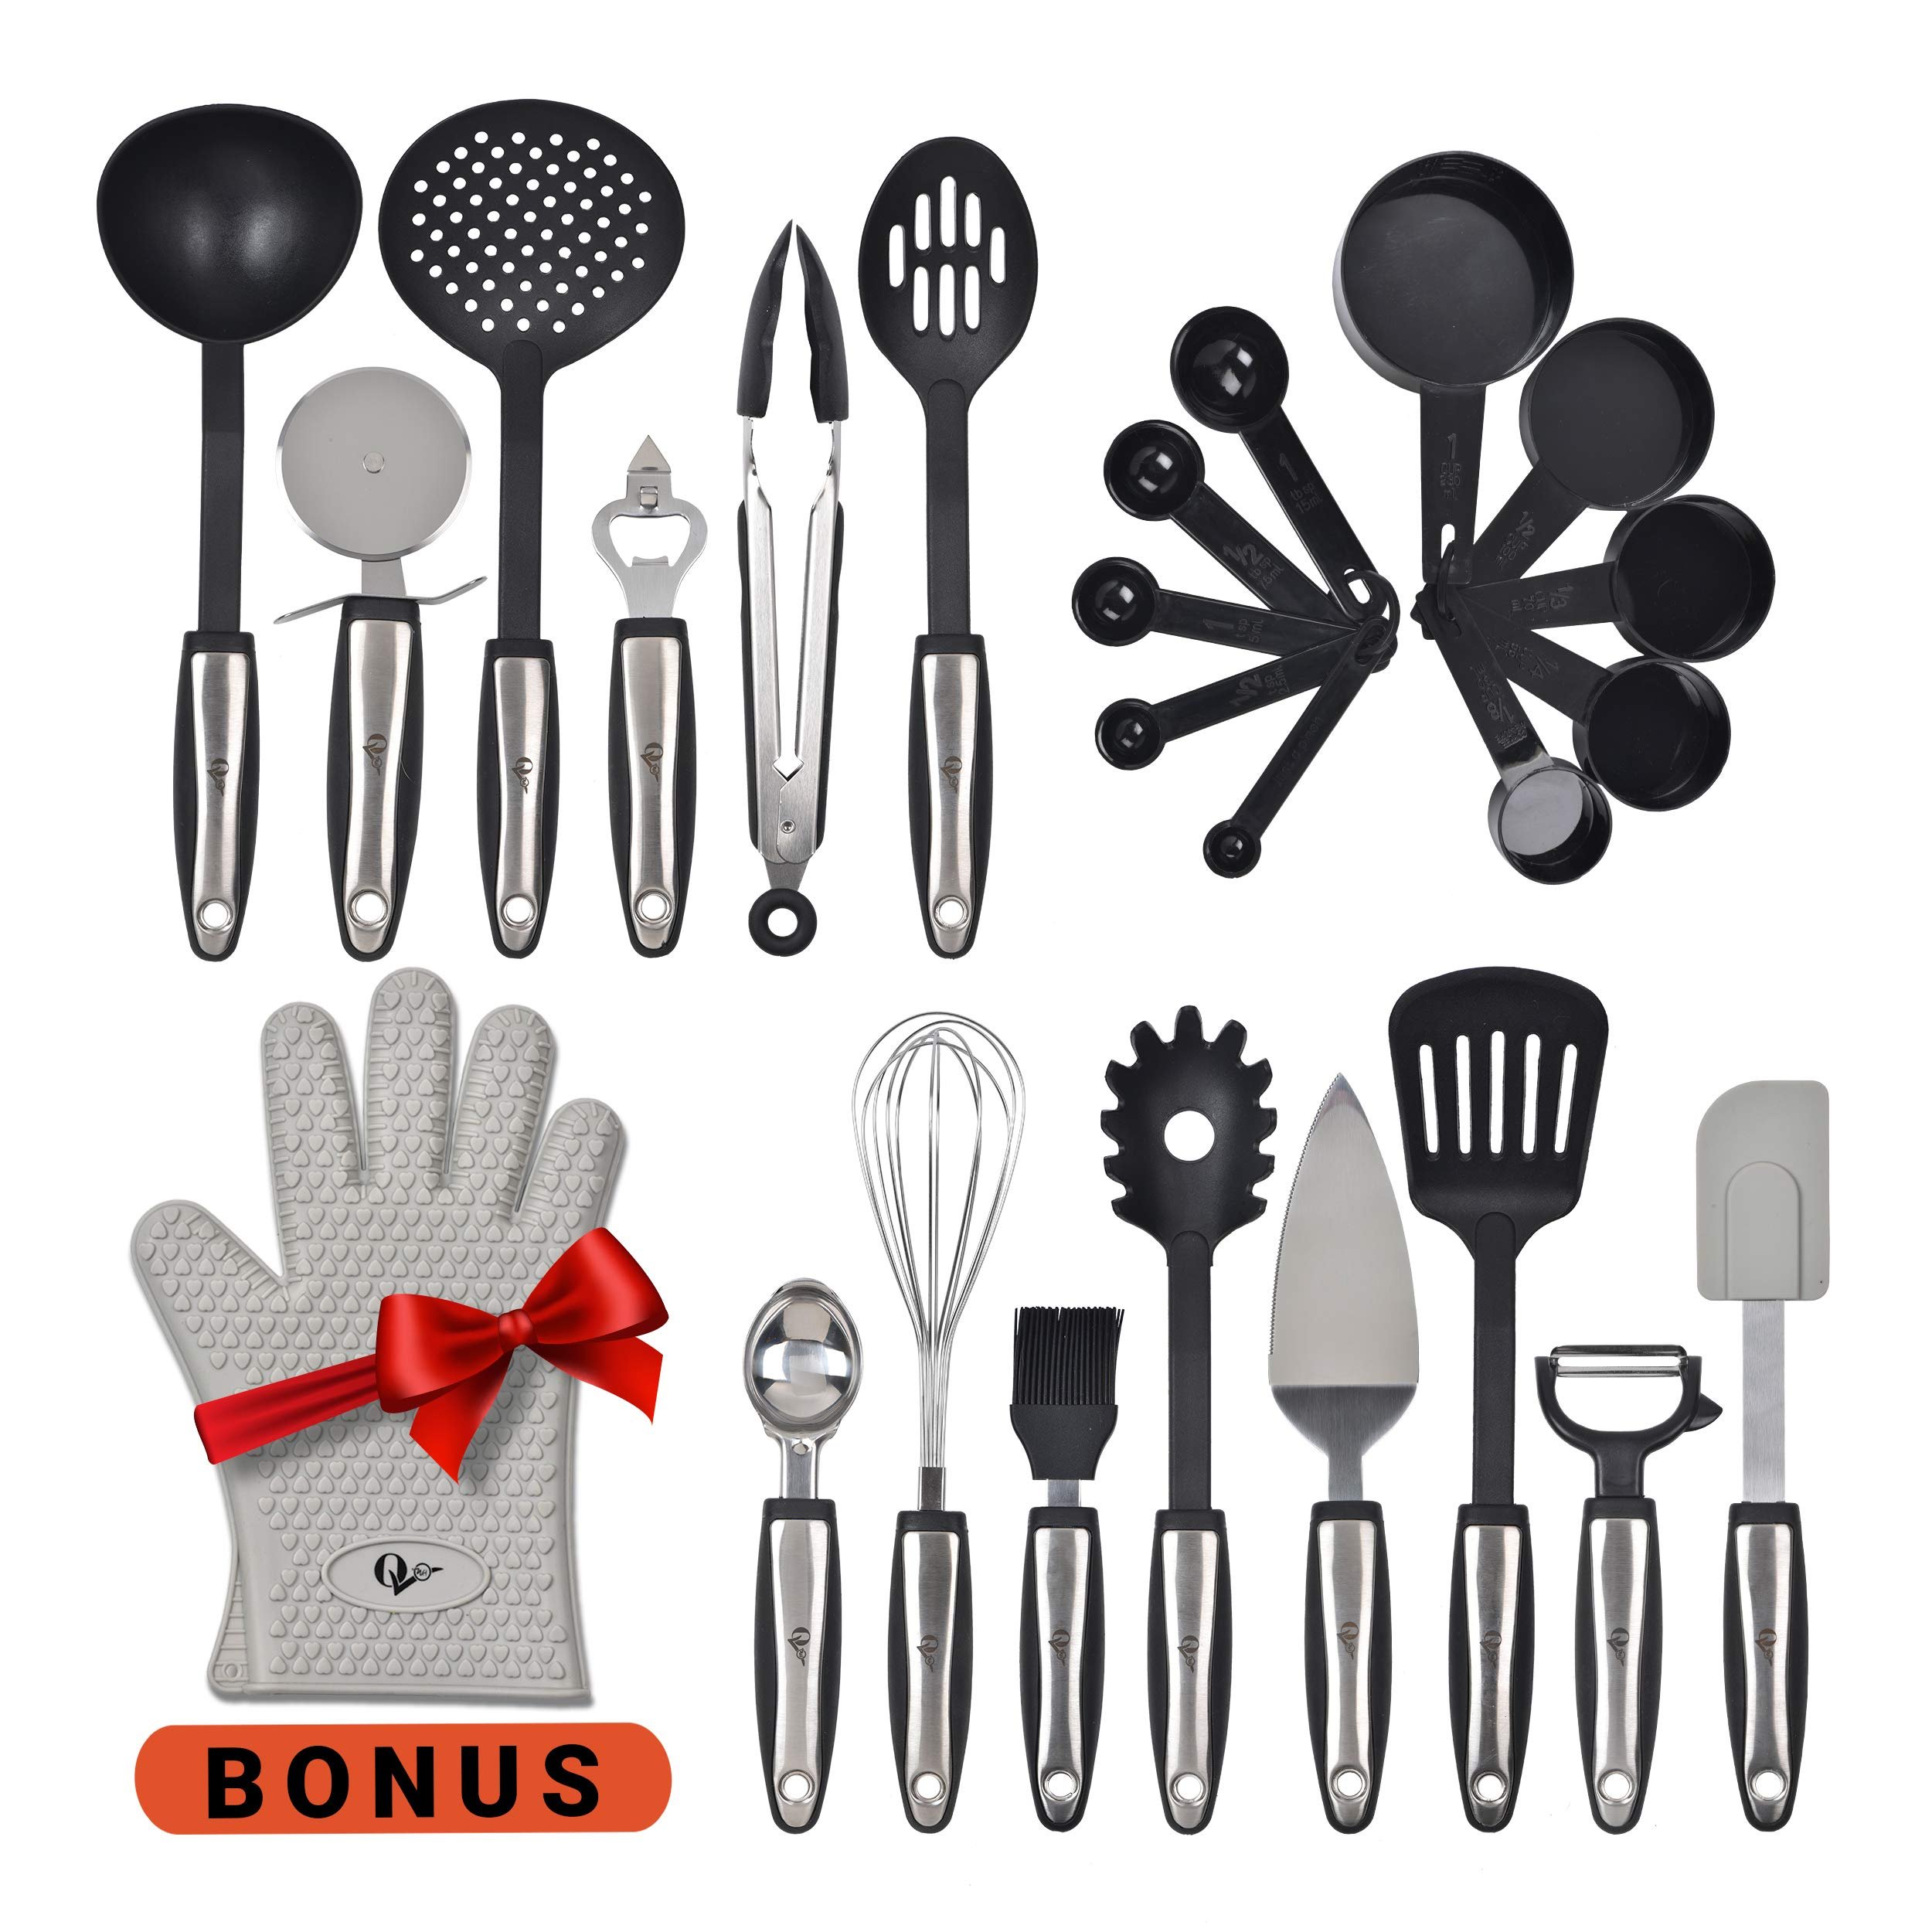 Kitchen Utensils 25 Pcs Set with Kitchen Tools and Kitchen Gadgets Made of Strong Stainless Steel and Nonstick Nylon - Heat Resistant - Everything You Need Cookware Set Plus Bonus Silicone Oven Glove by WH-SHOP